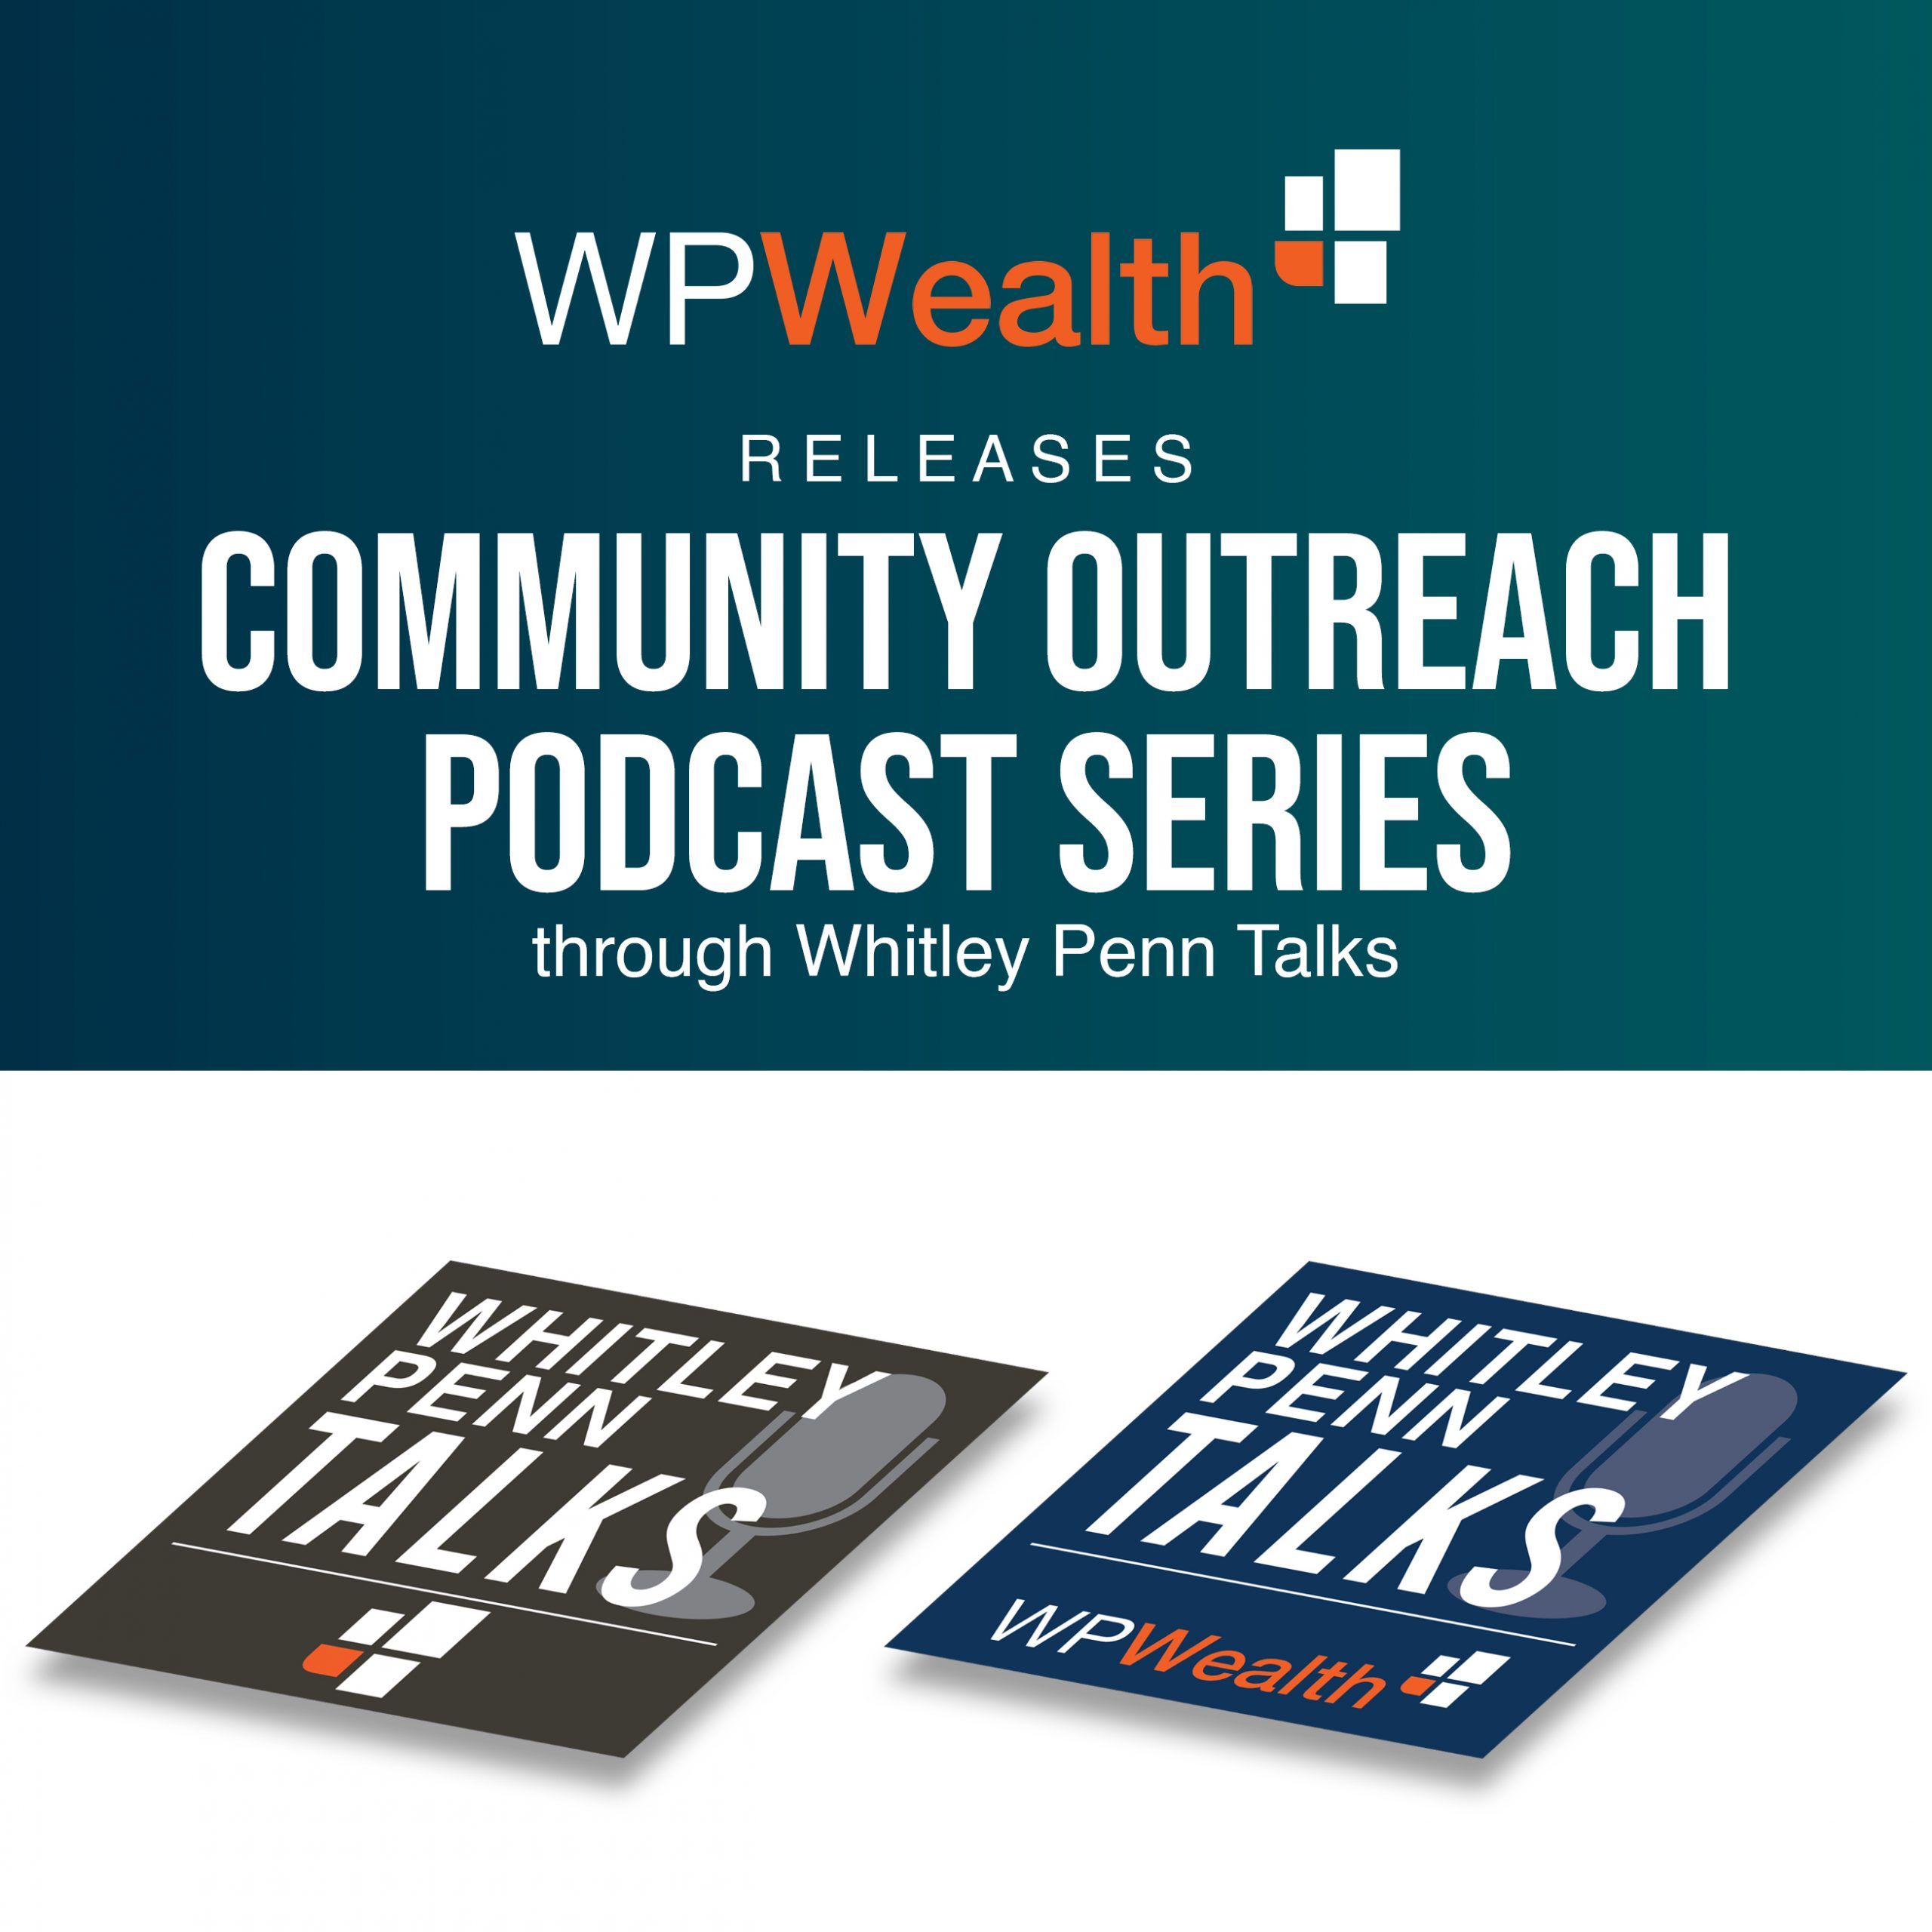 community outreach podcast series announced